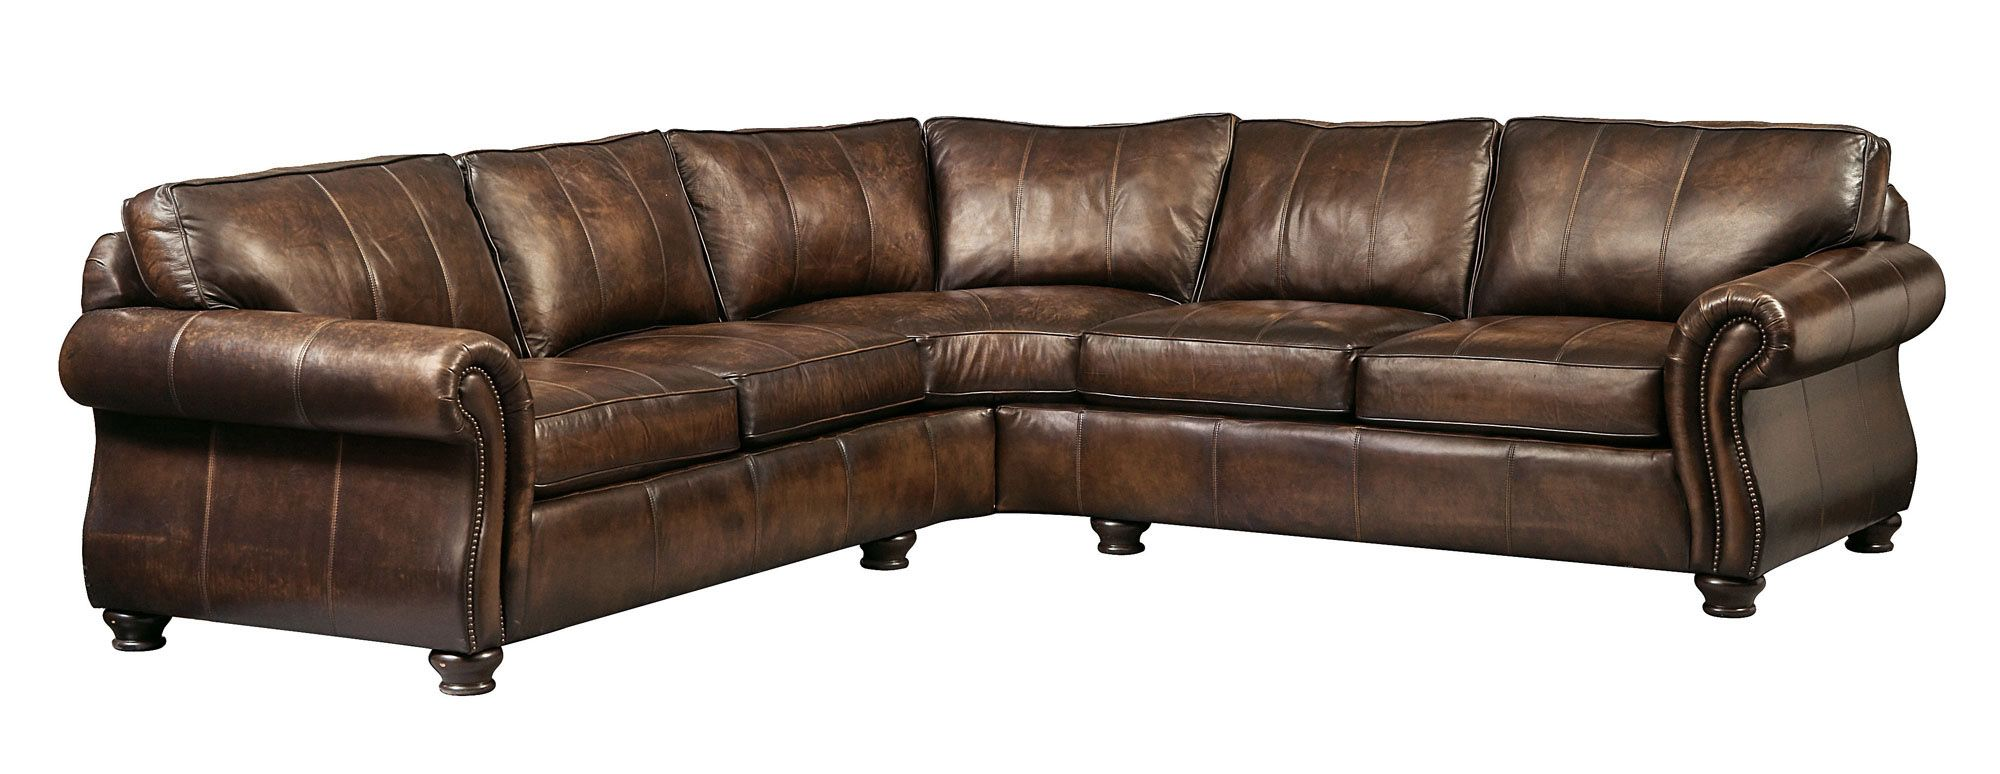 Shop For Bernhardt Leather Sectional Group, And Other Living Room  Sectionals Pieces Shown: Left Arm Sofa. Right Arm Sofa. Pillows: Loose Back  Pillows With ...